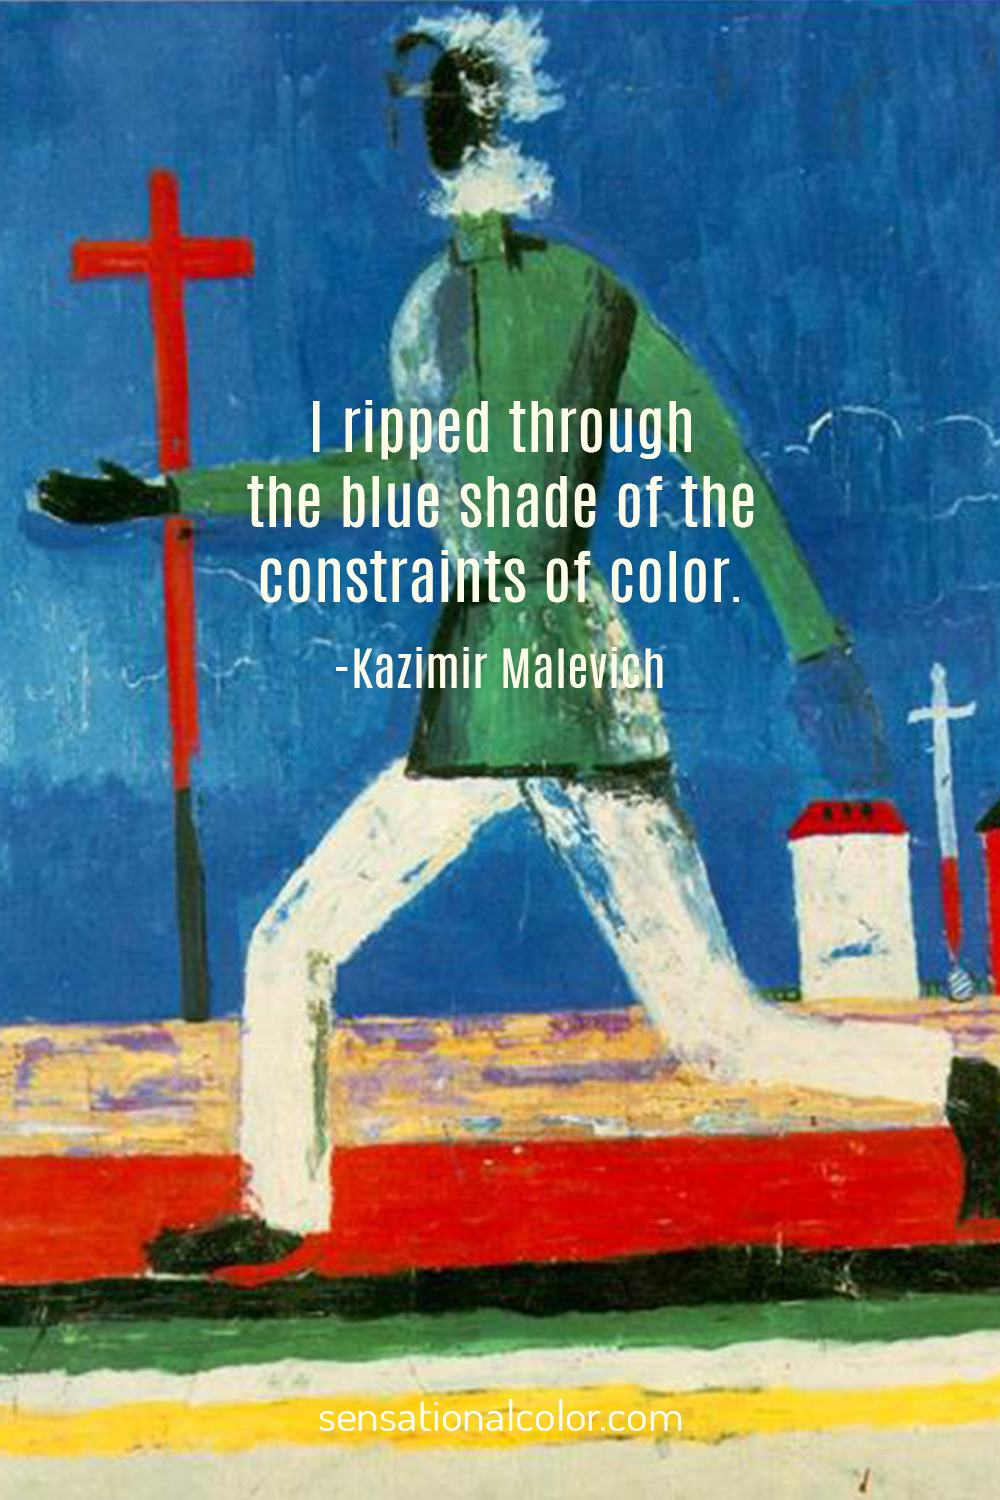 """I ripped through the blue shade of the constraints of color."" - Kasimir Malevich"